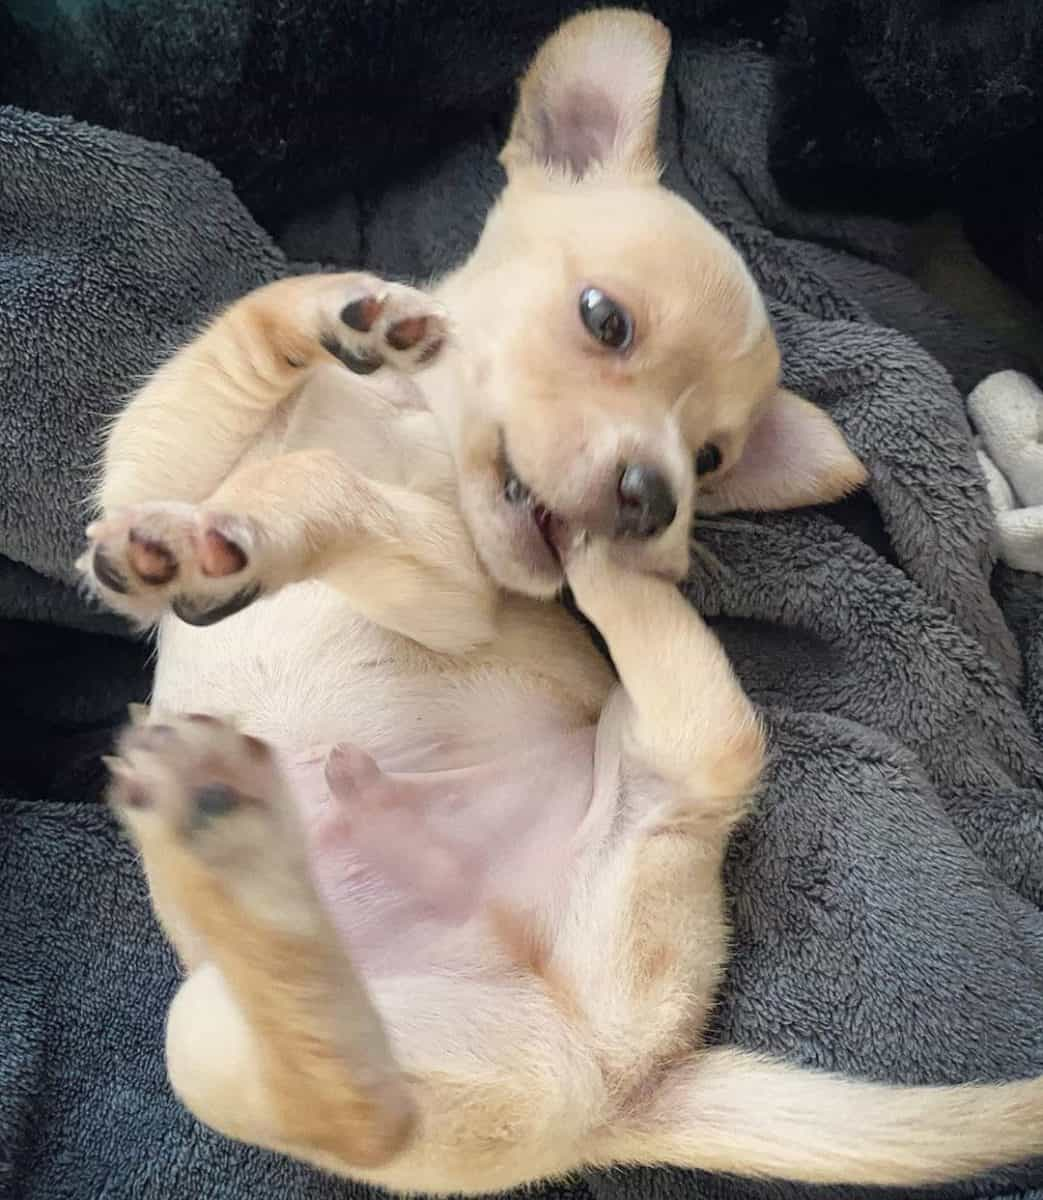 Teacup Chihuahua sleeping on their back